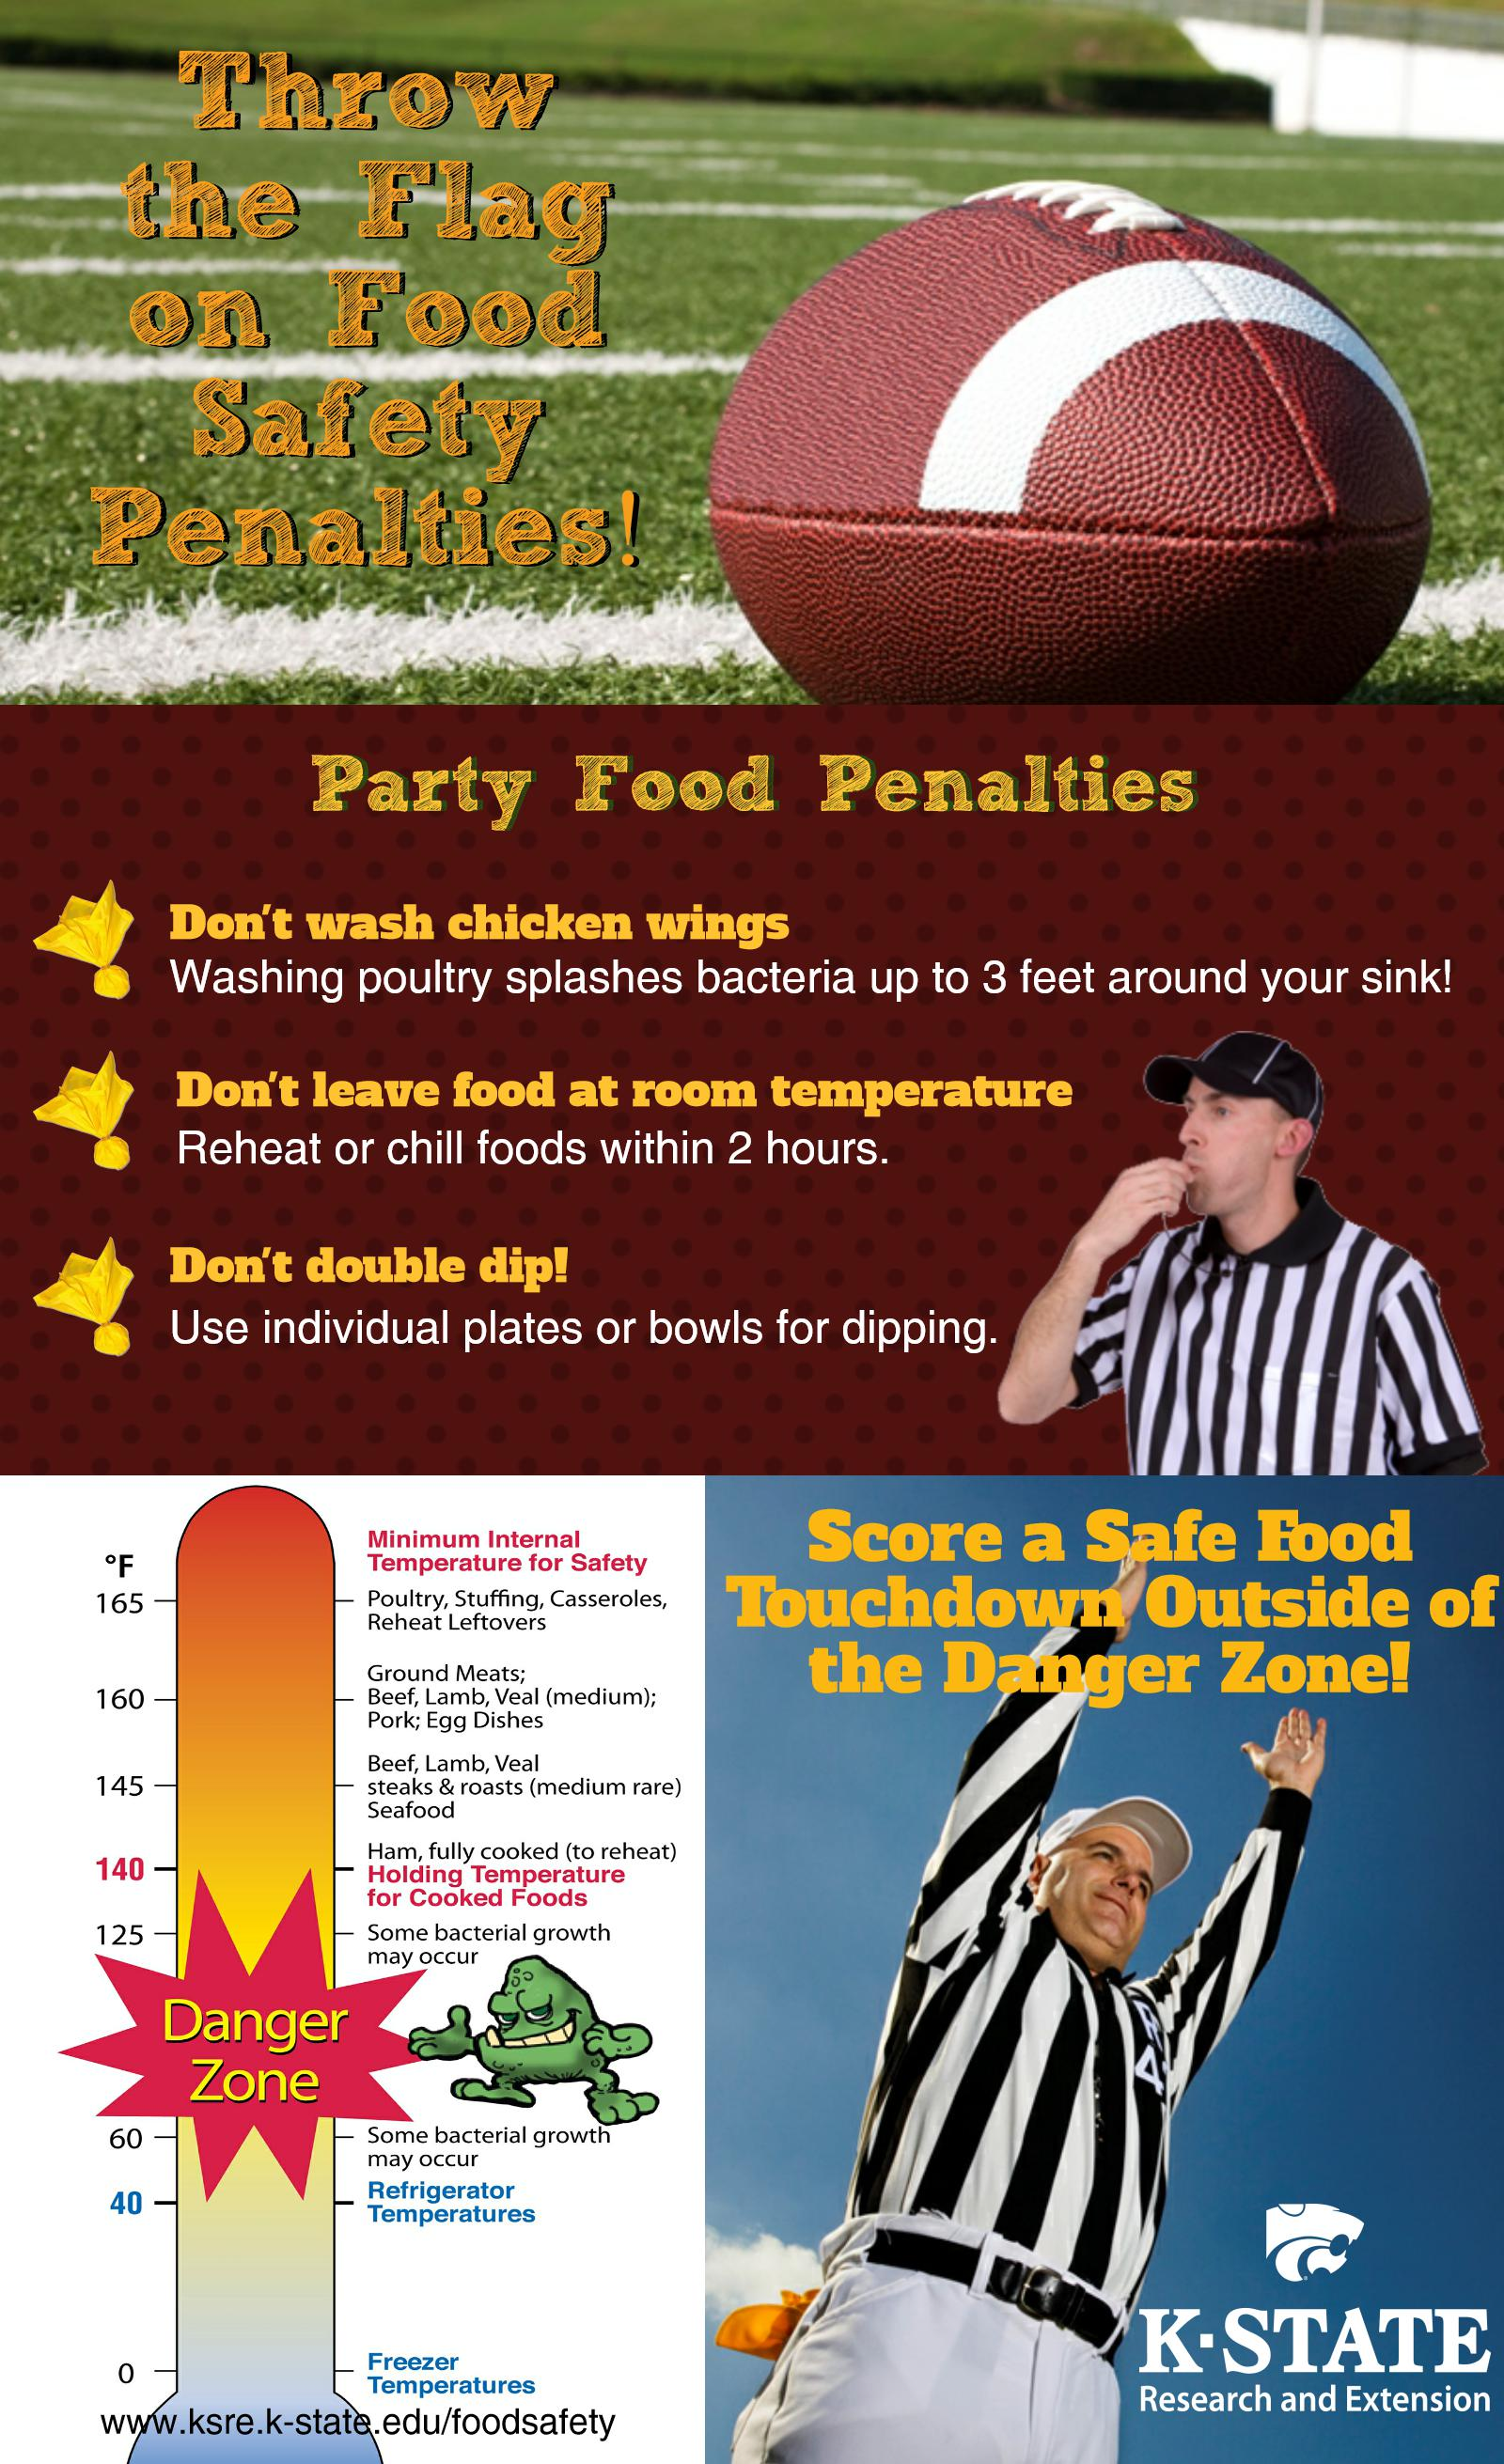 A football referee in a black and white striped shirt blows a whistle while another raises his arms to signal a touchdown. These photos illustrate food safety tips appropriate for Superbowl parties. Another illustration uses a thermometer to depict the proper freezing, refrigeration, cooking and holding temperatures for food.